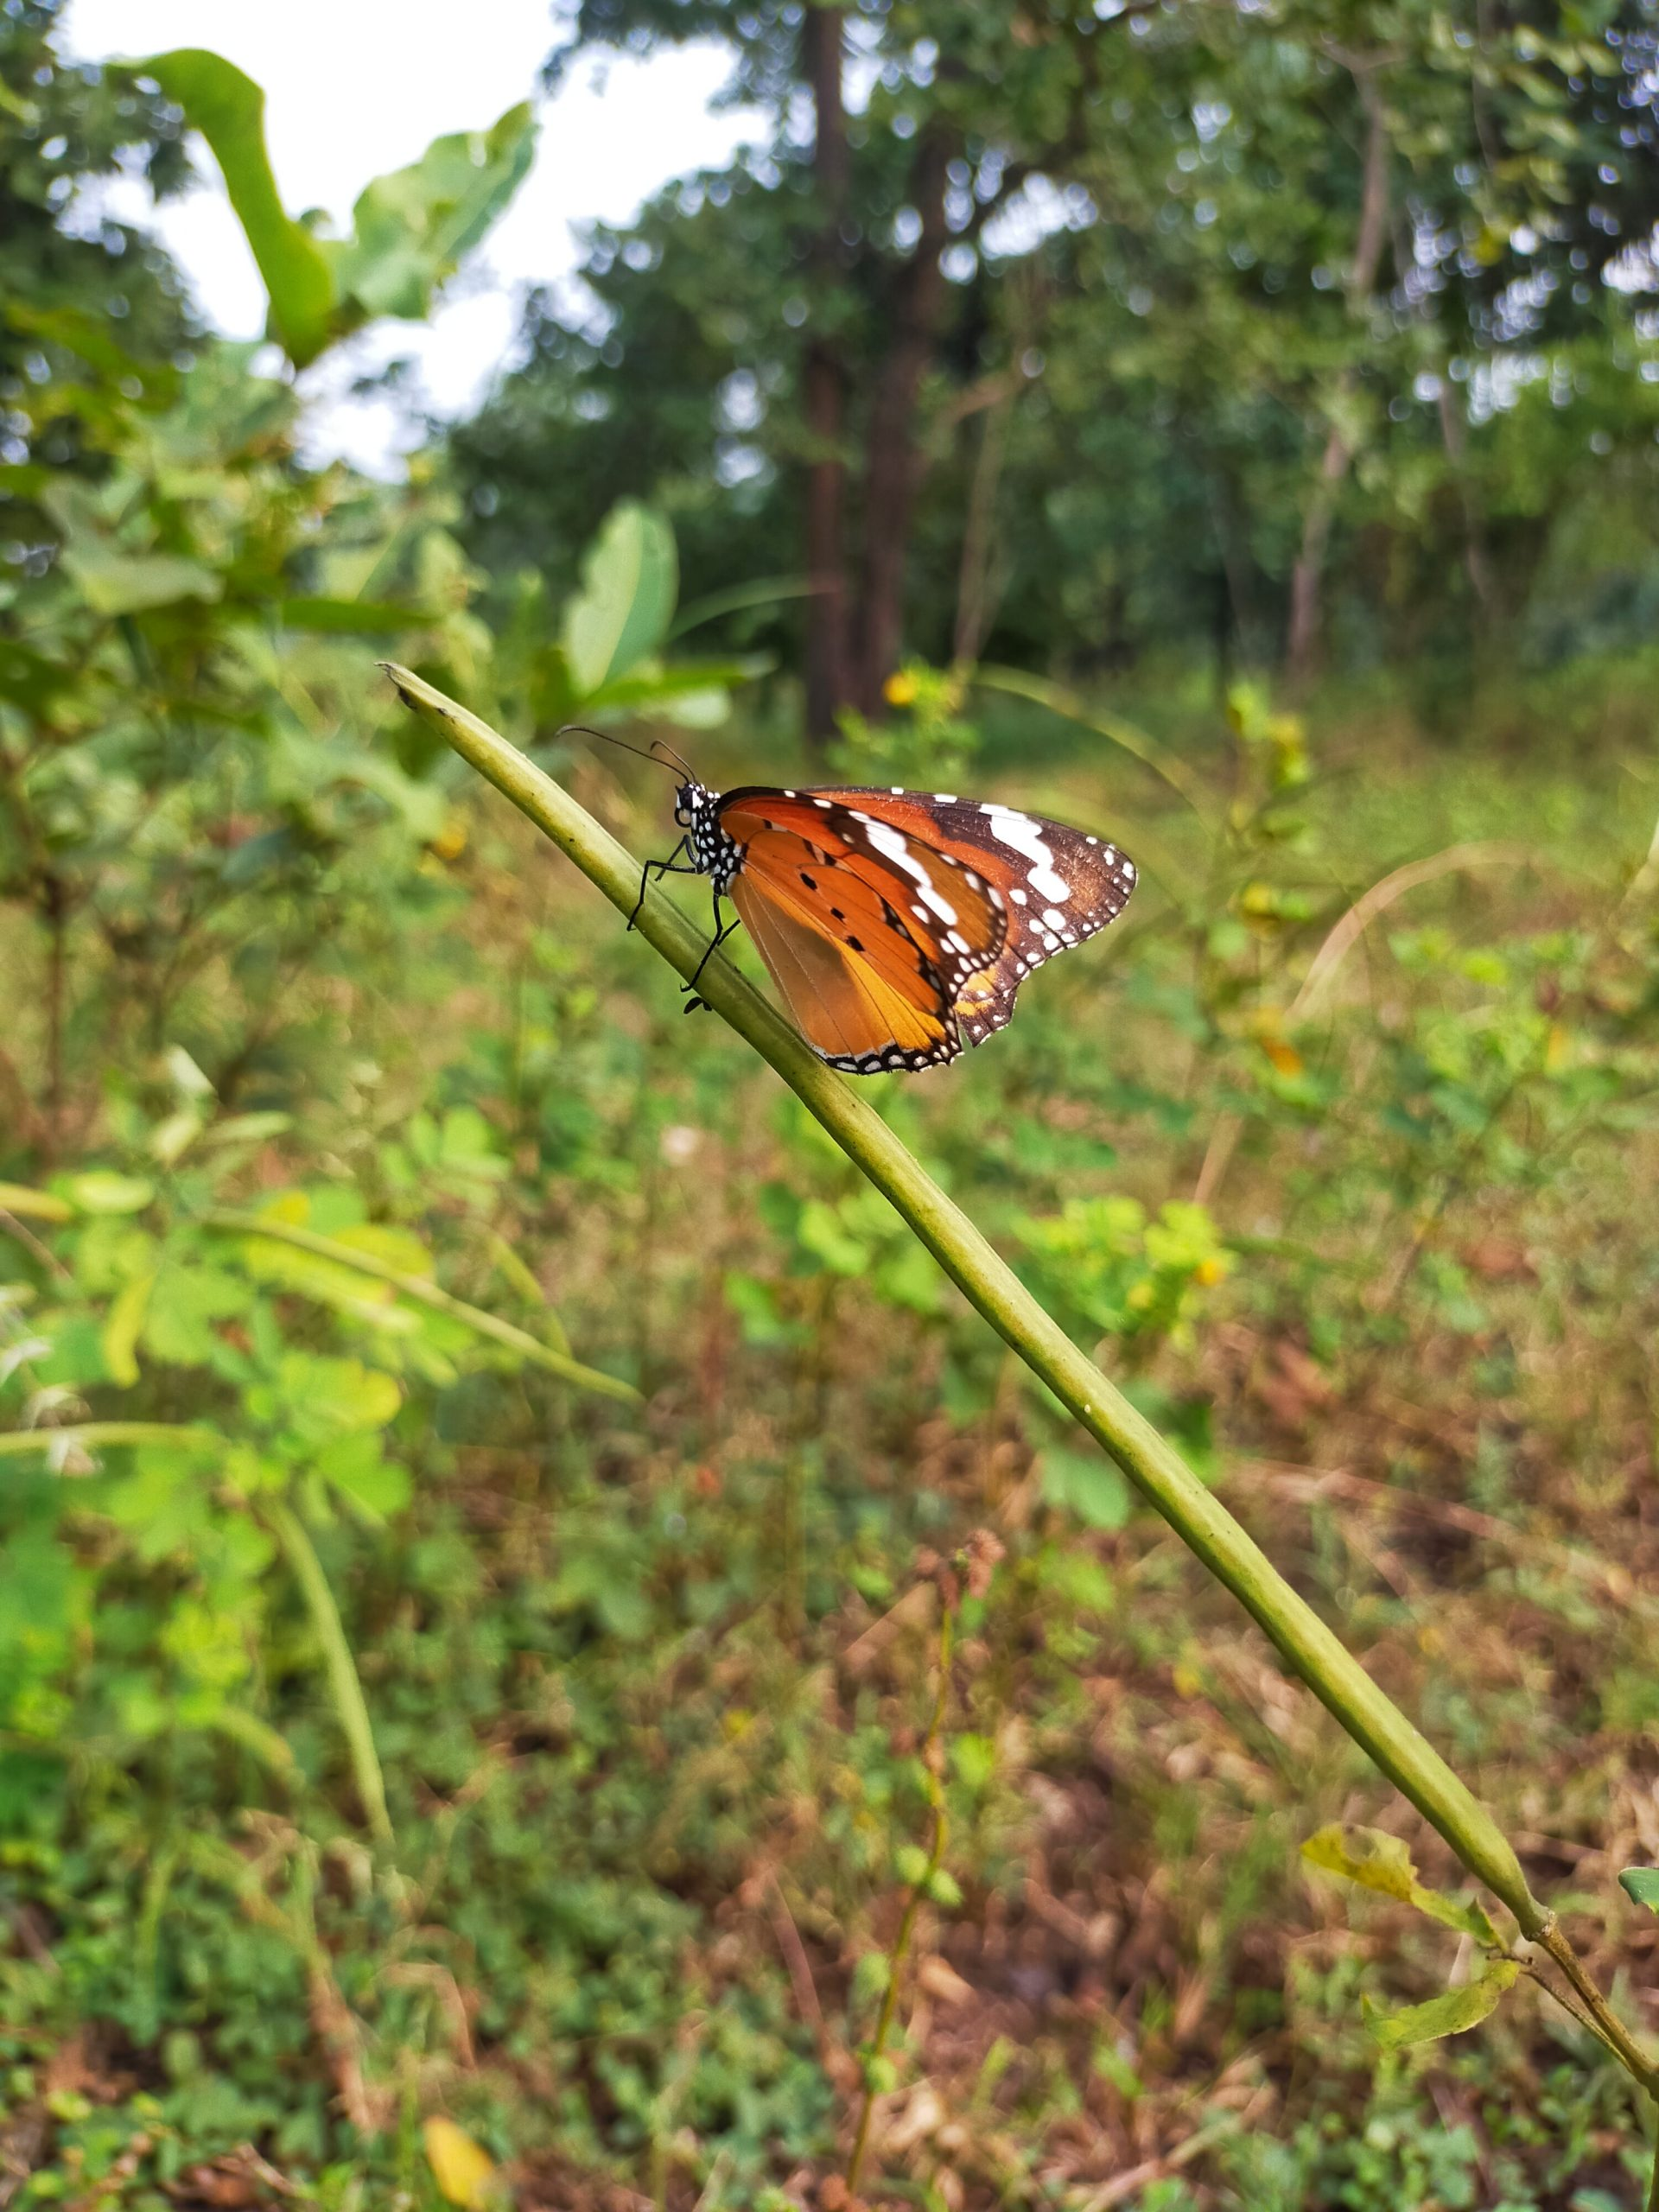 Butterfly on plant stem